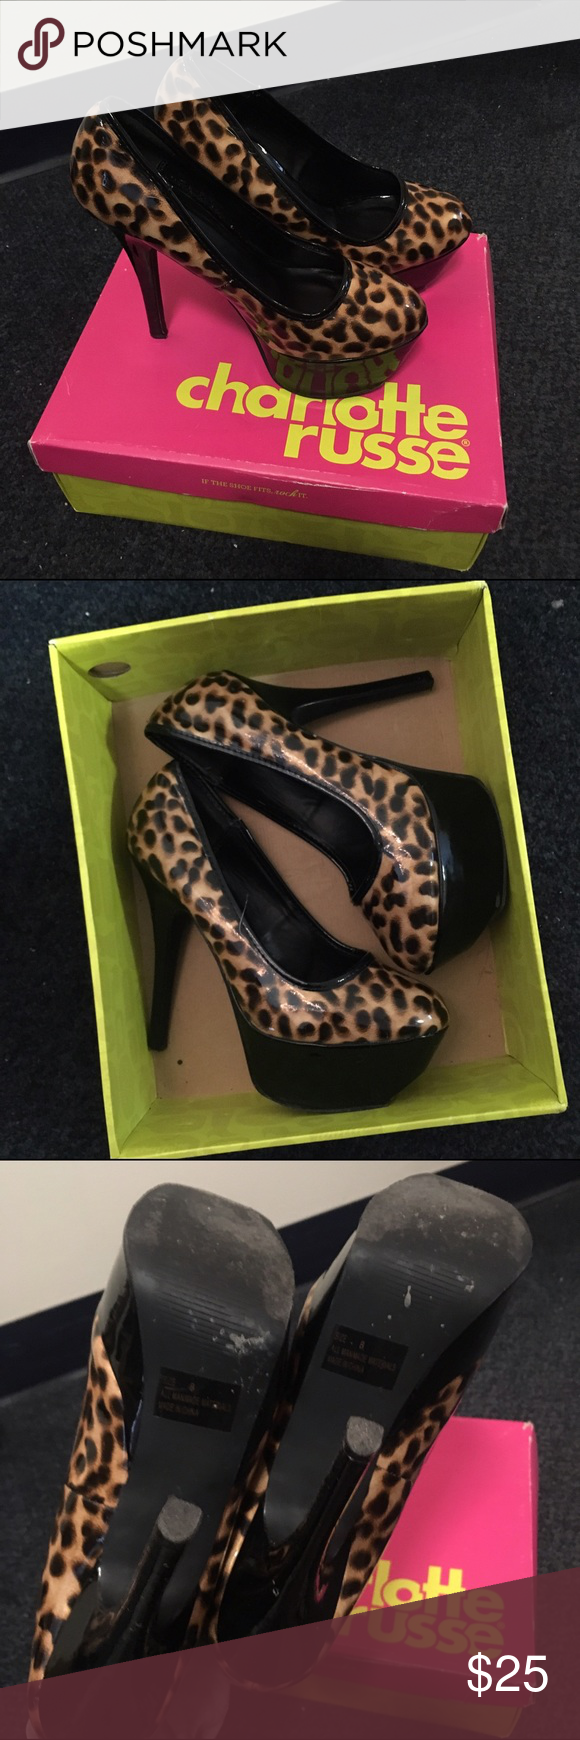 Cheetah Print Pumps In good condition, gently warn. They are perfect for a night out and the heel is very high (including the platform). Comment below if you have any questions! Charlotte Russe Shoes Heels